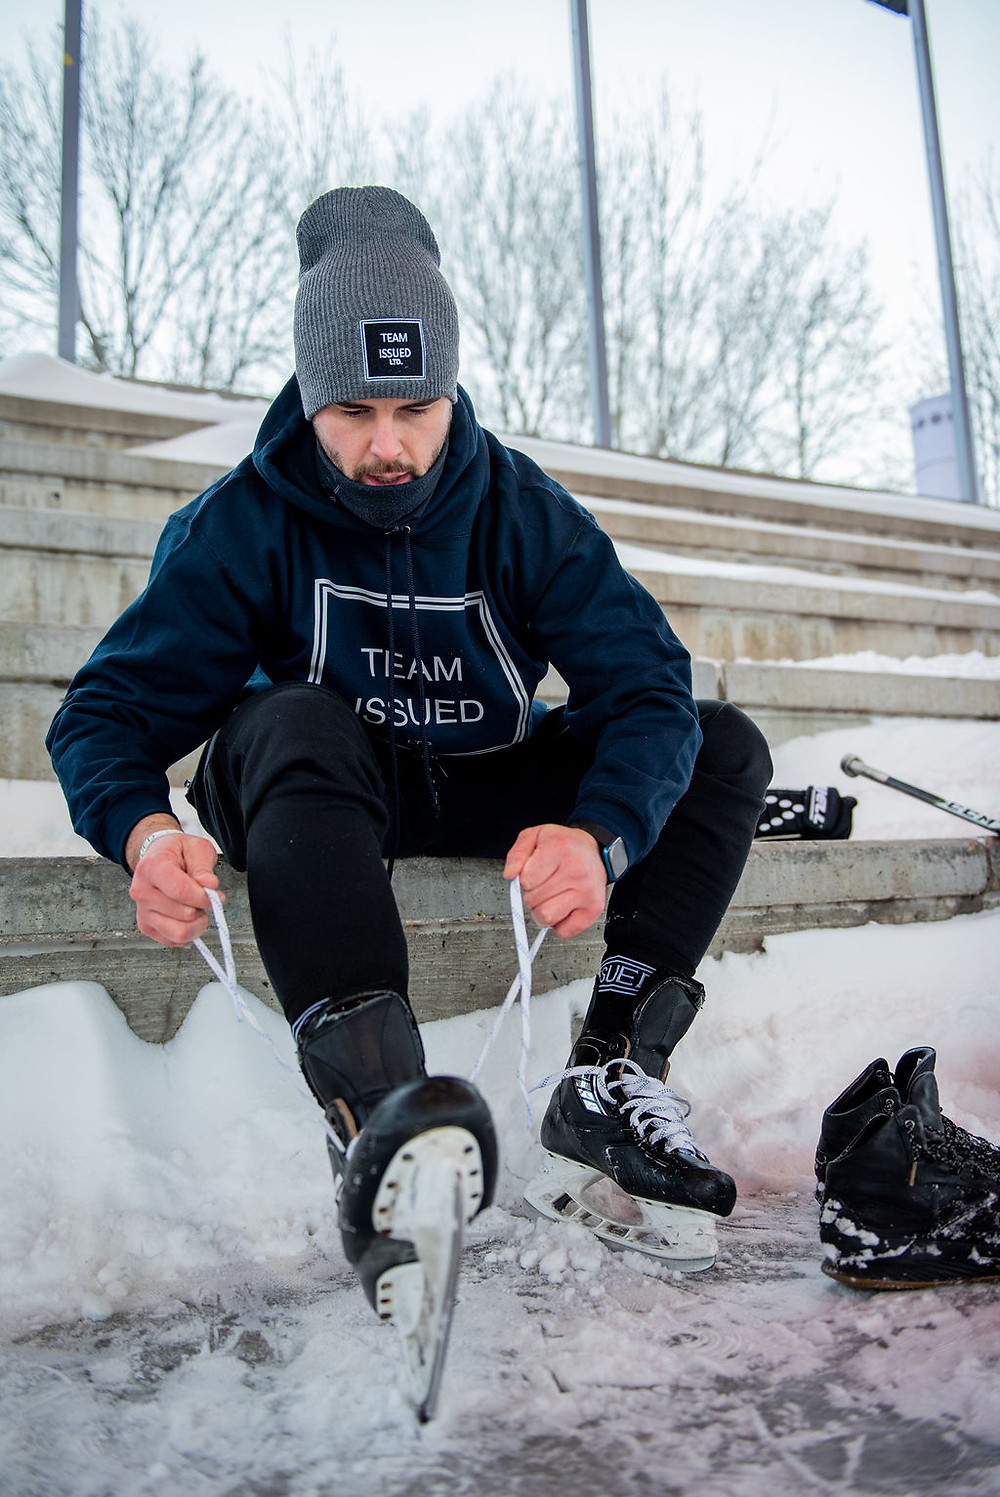 Man in his 20's on a park bench lacing up black hockey skates wearing a Team Issued outfit including a blue hoody, black sweatpants, and a grey toque